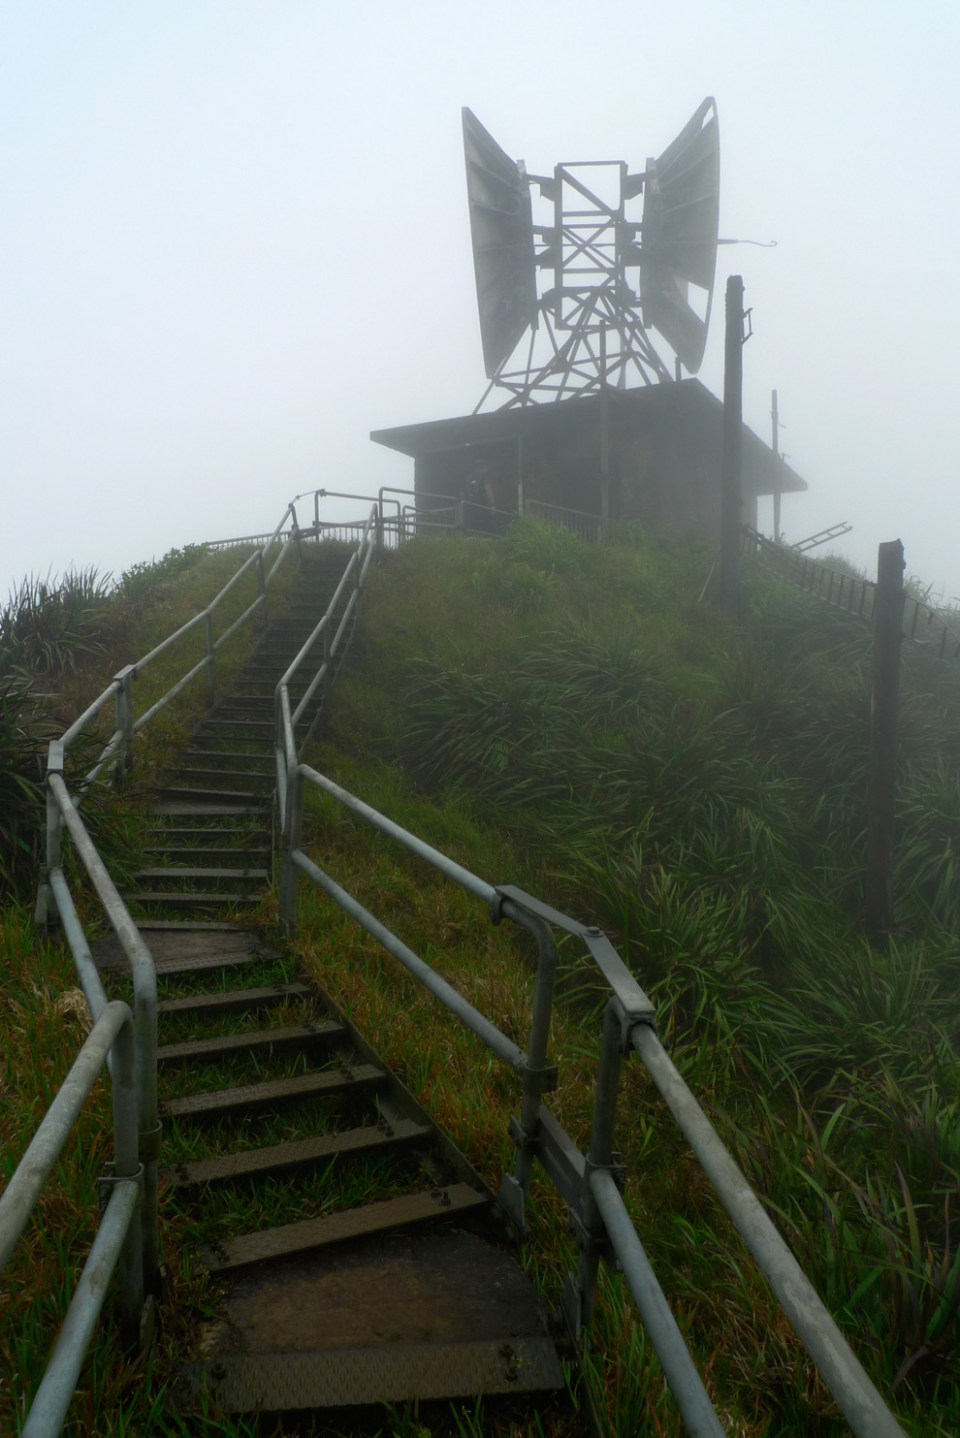 This is the top. These antennae were used to communicate with the naval fleet during World War II. Image credit: unrealhawaii.com